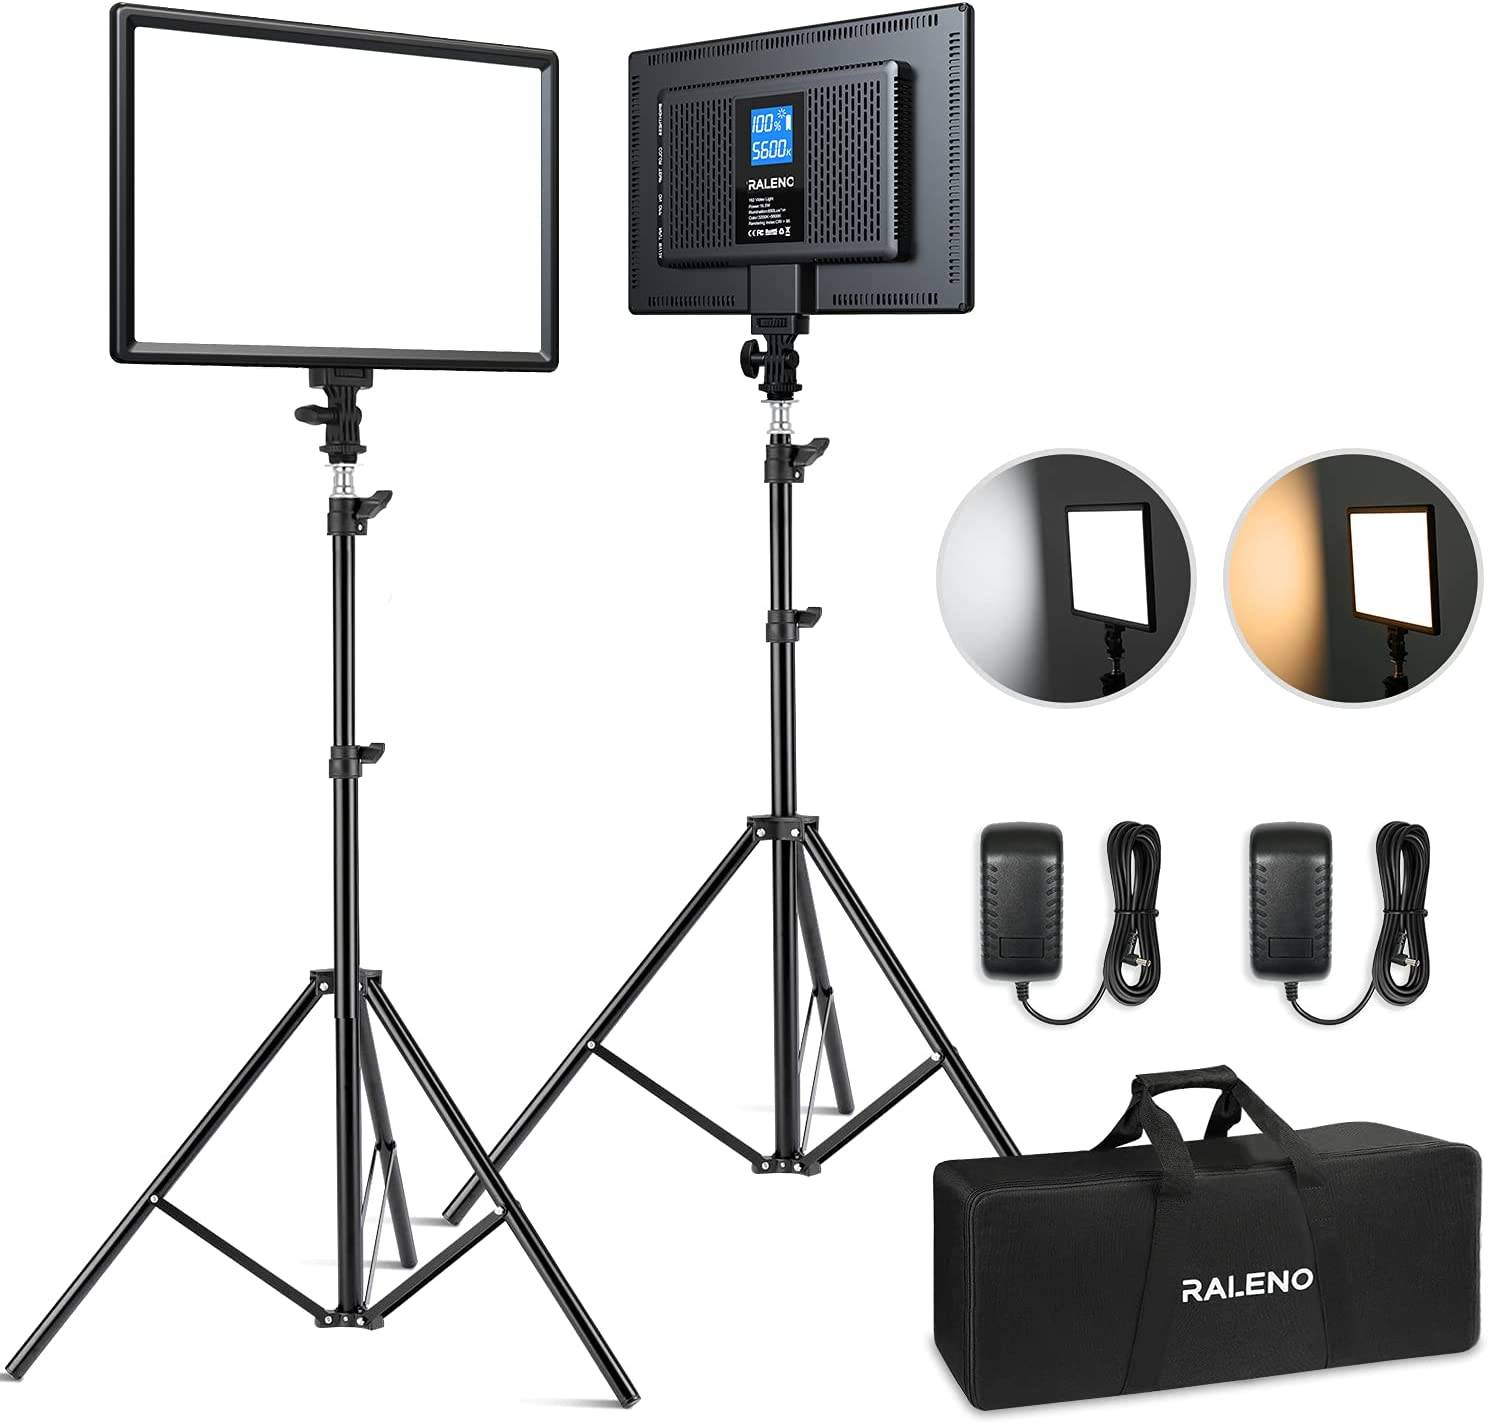 RALENO LED Video Lighting Kits With 75inch Durabl Light 1 Popular standard Stand Fixed price for sale